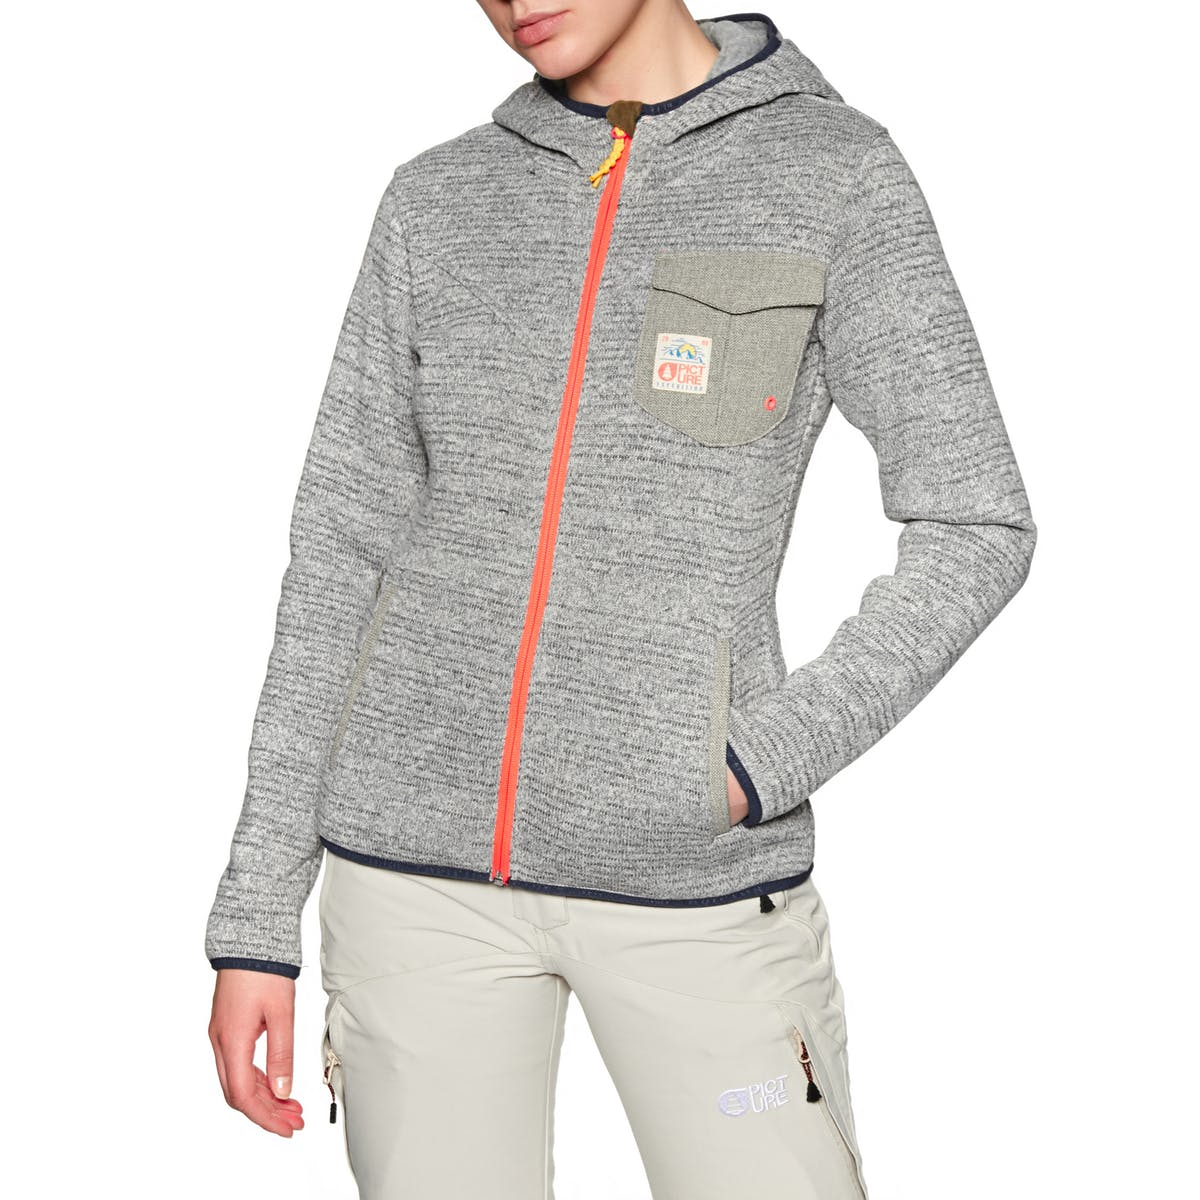 Picture Organic Clothing fleece